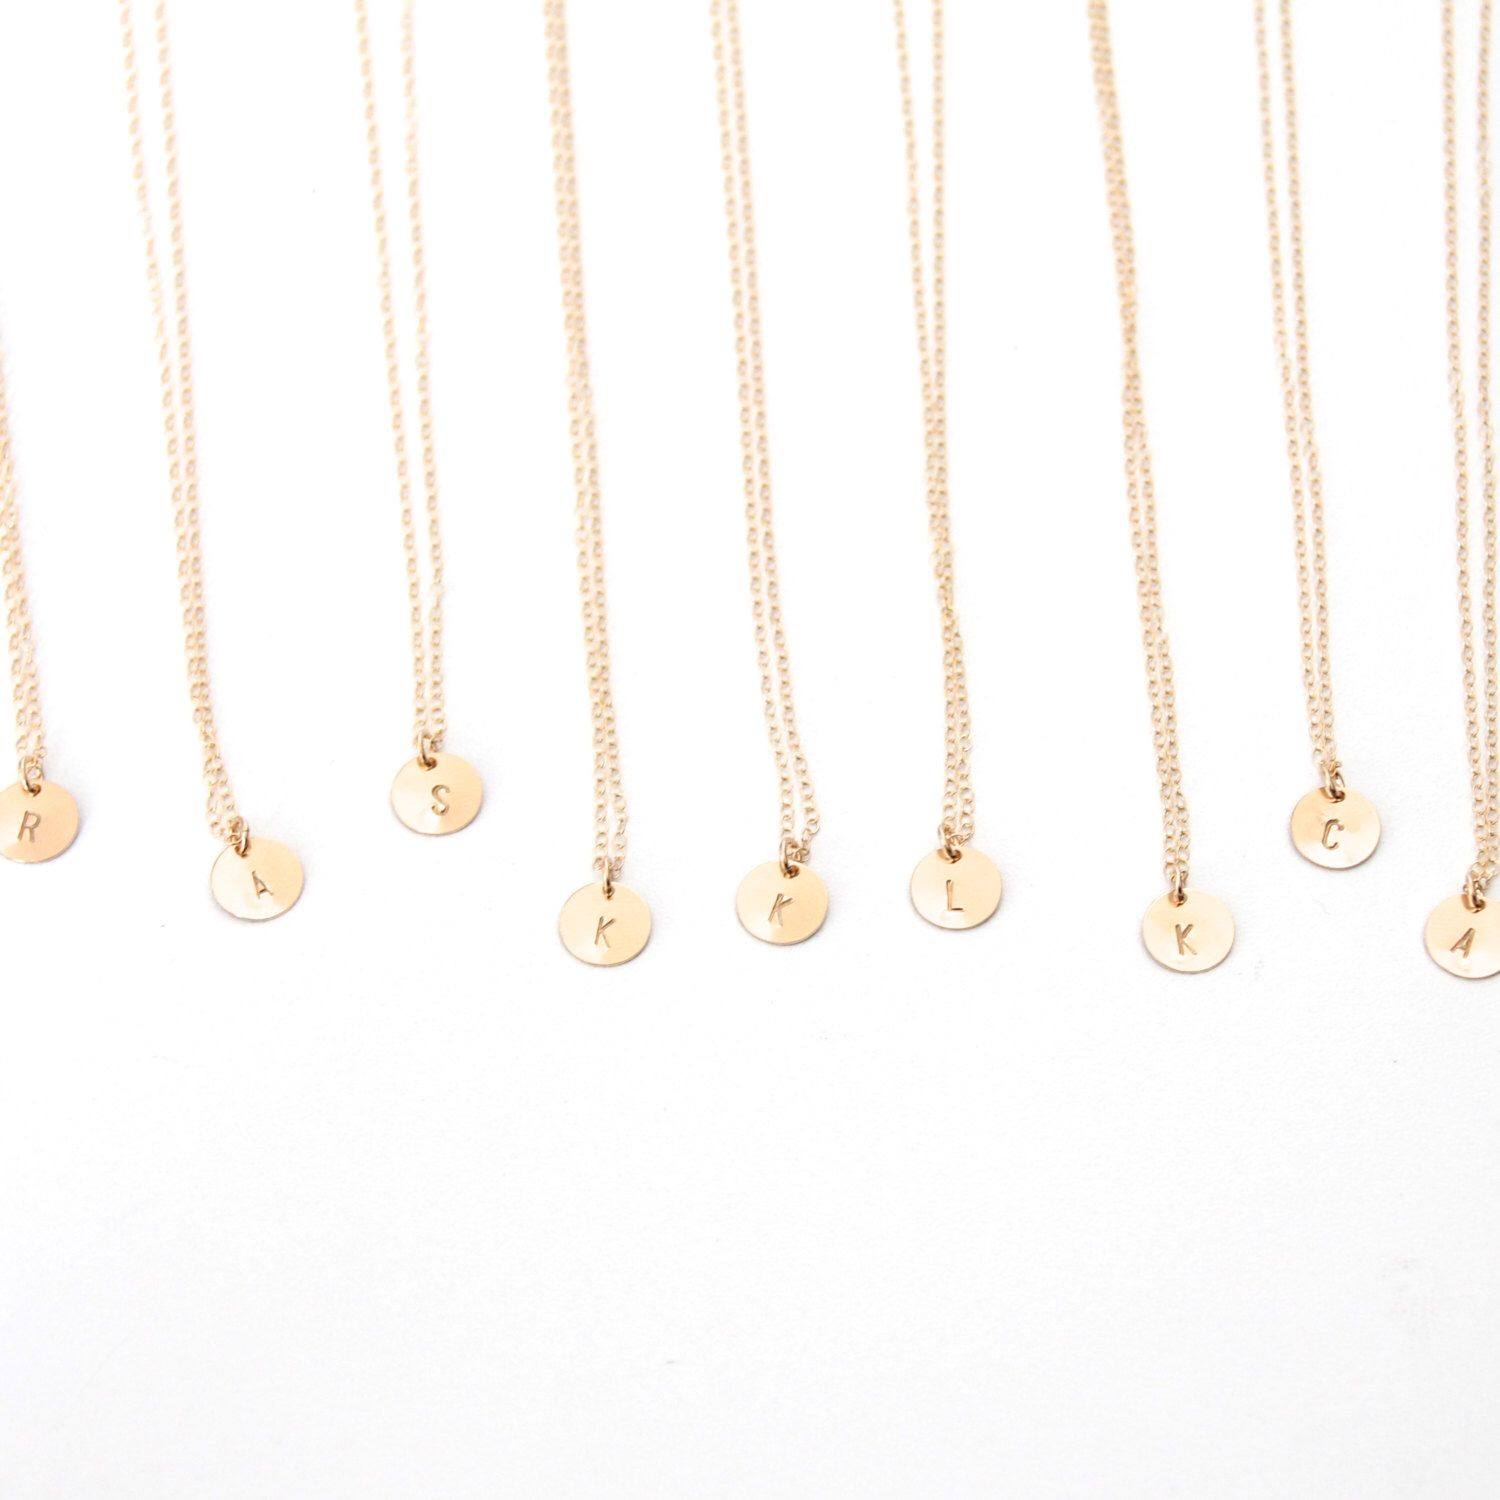 chains initial necklaces engraved com pin from silver notonthehighstreet personalised necklace sterling